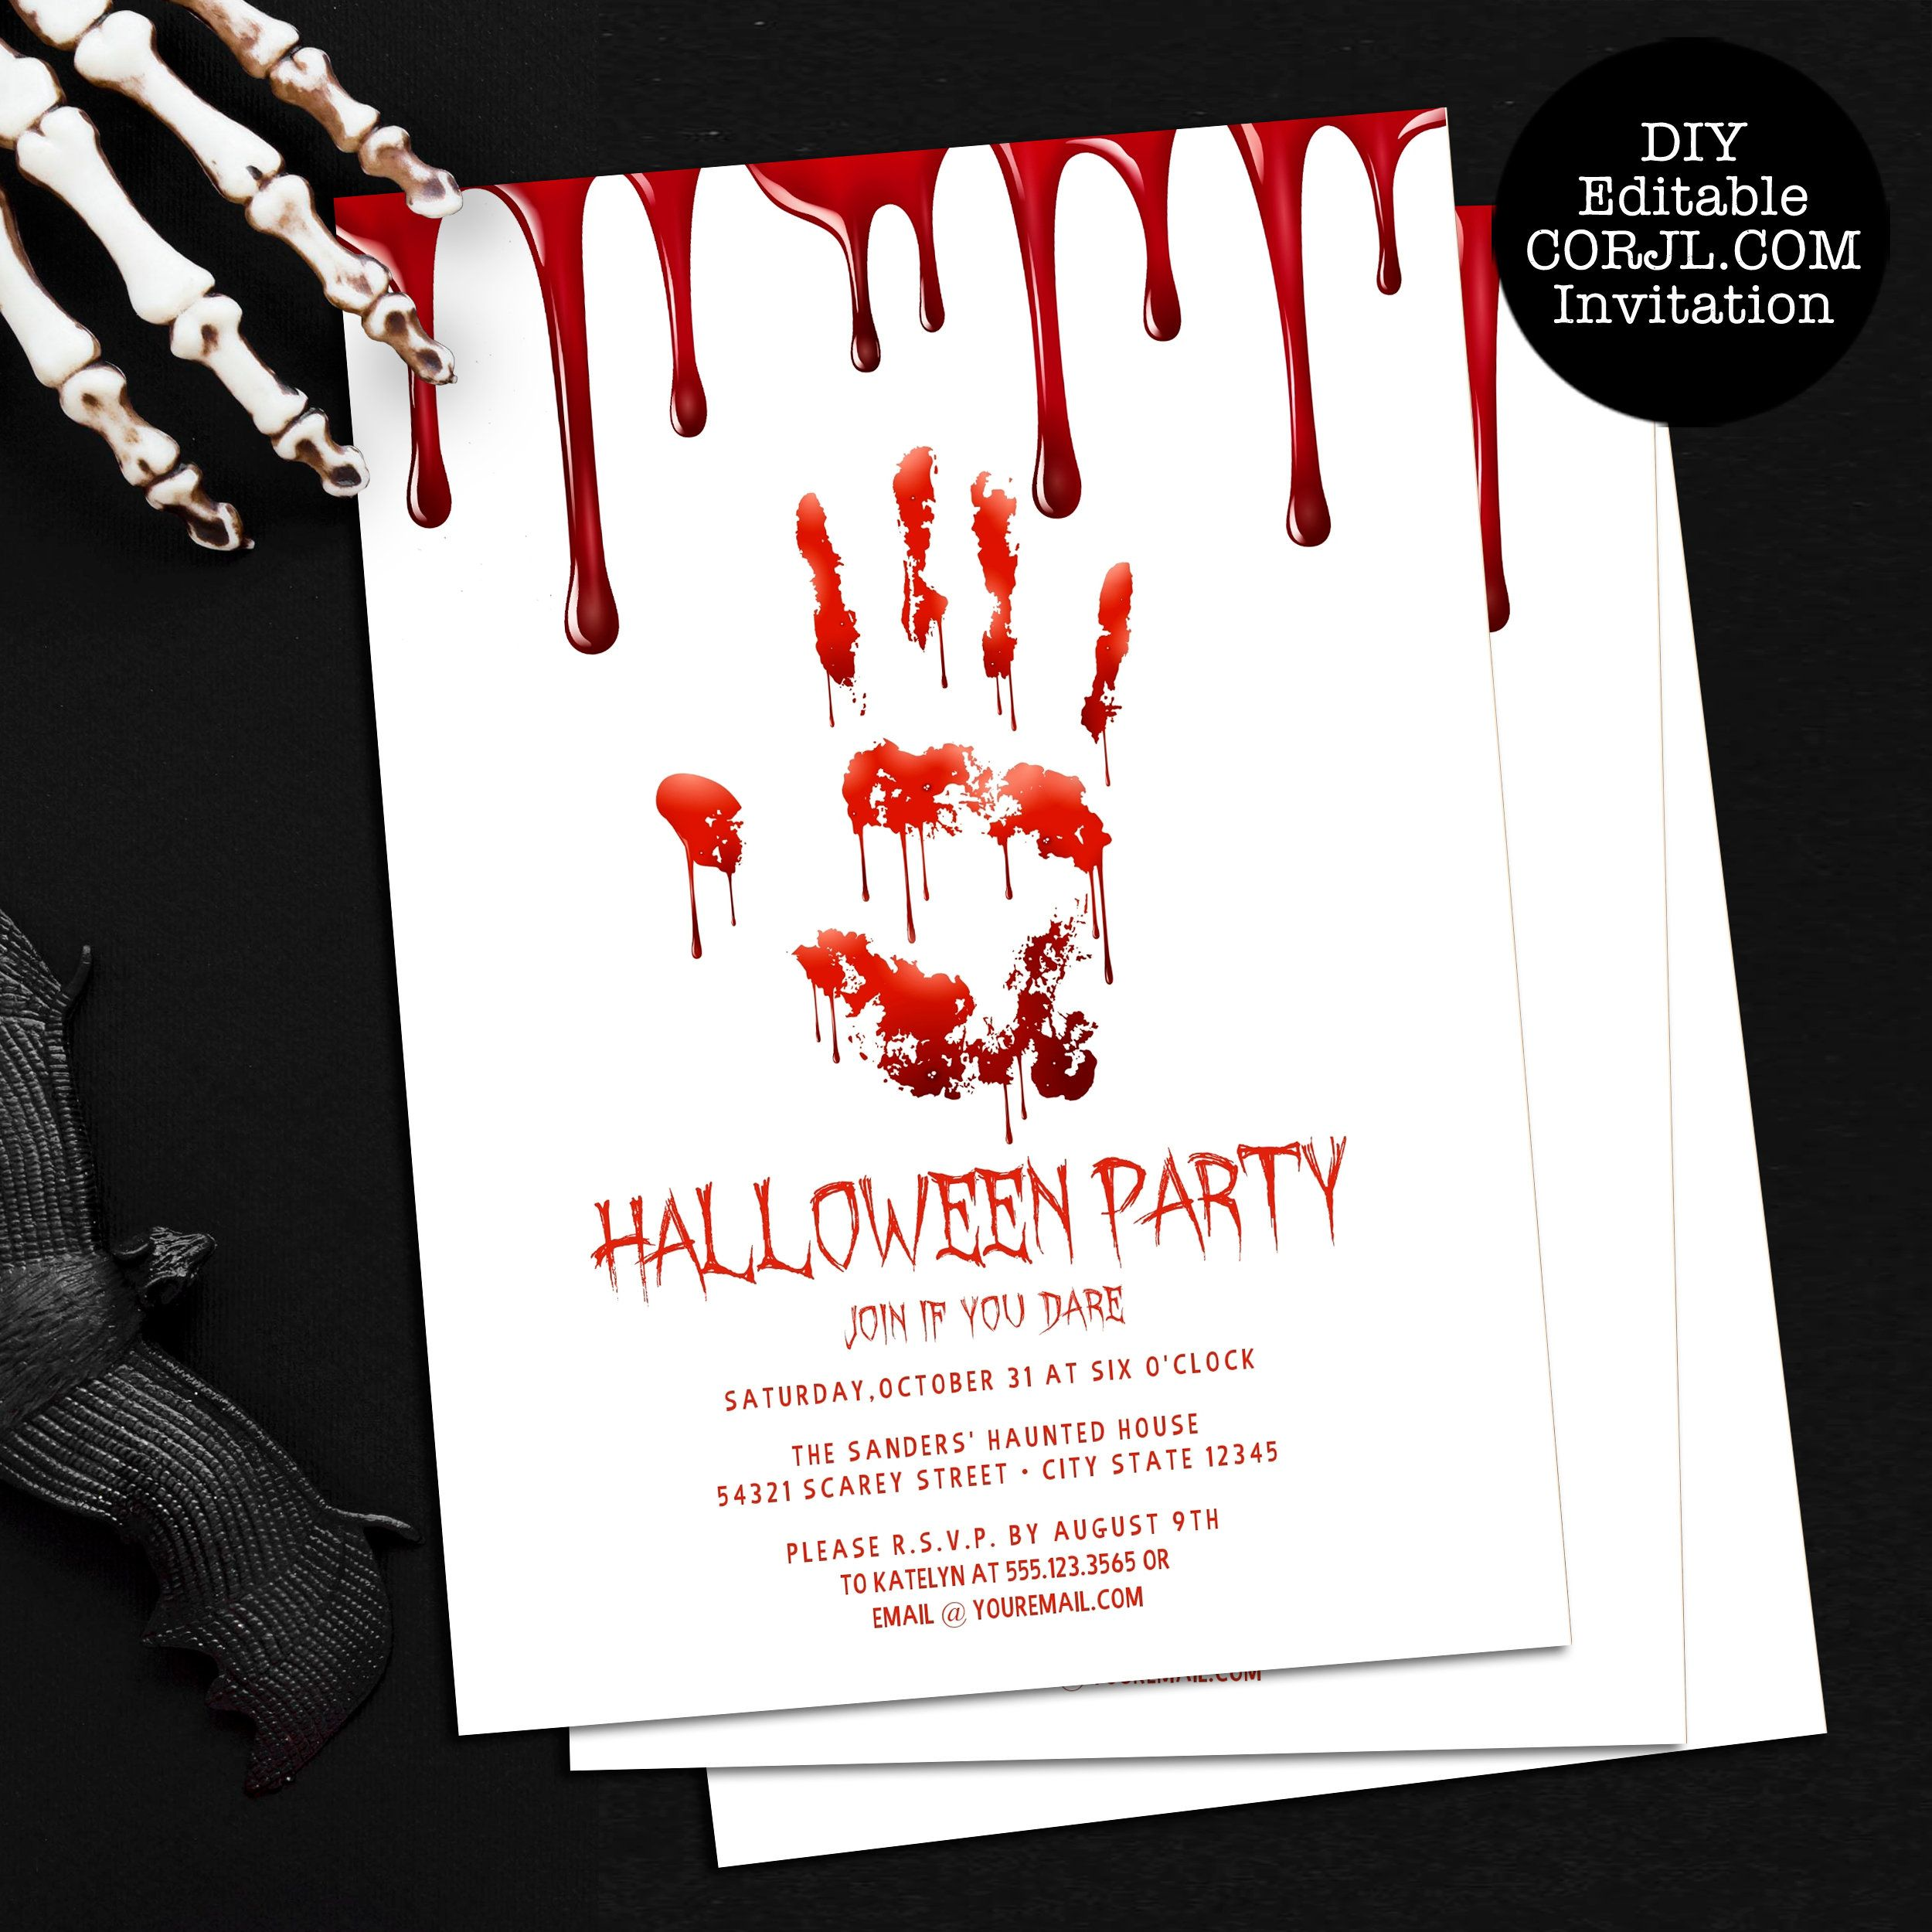 Pin on Halloween Invitations and Decorations